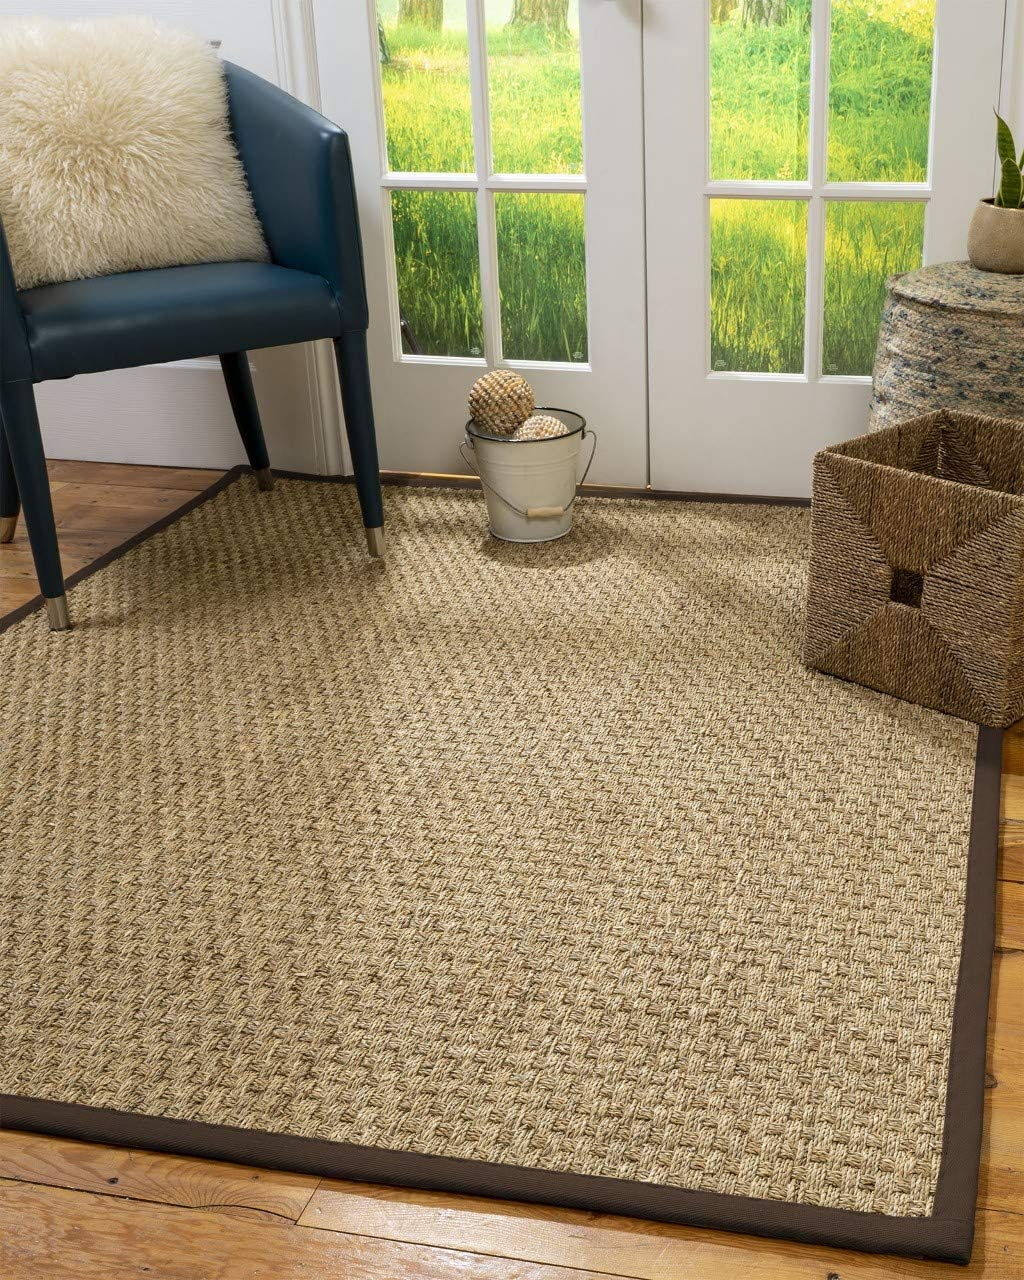 Natural Area Rugs 100 , Natural Fiber Handmade Basketweave, Seagrass Rug, 2 x 3 Fudge Border